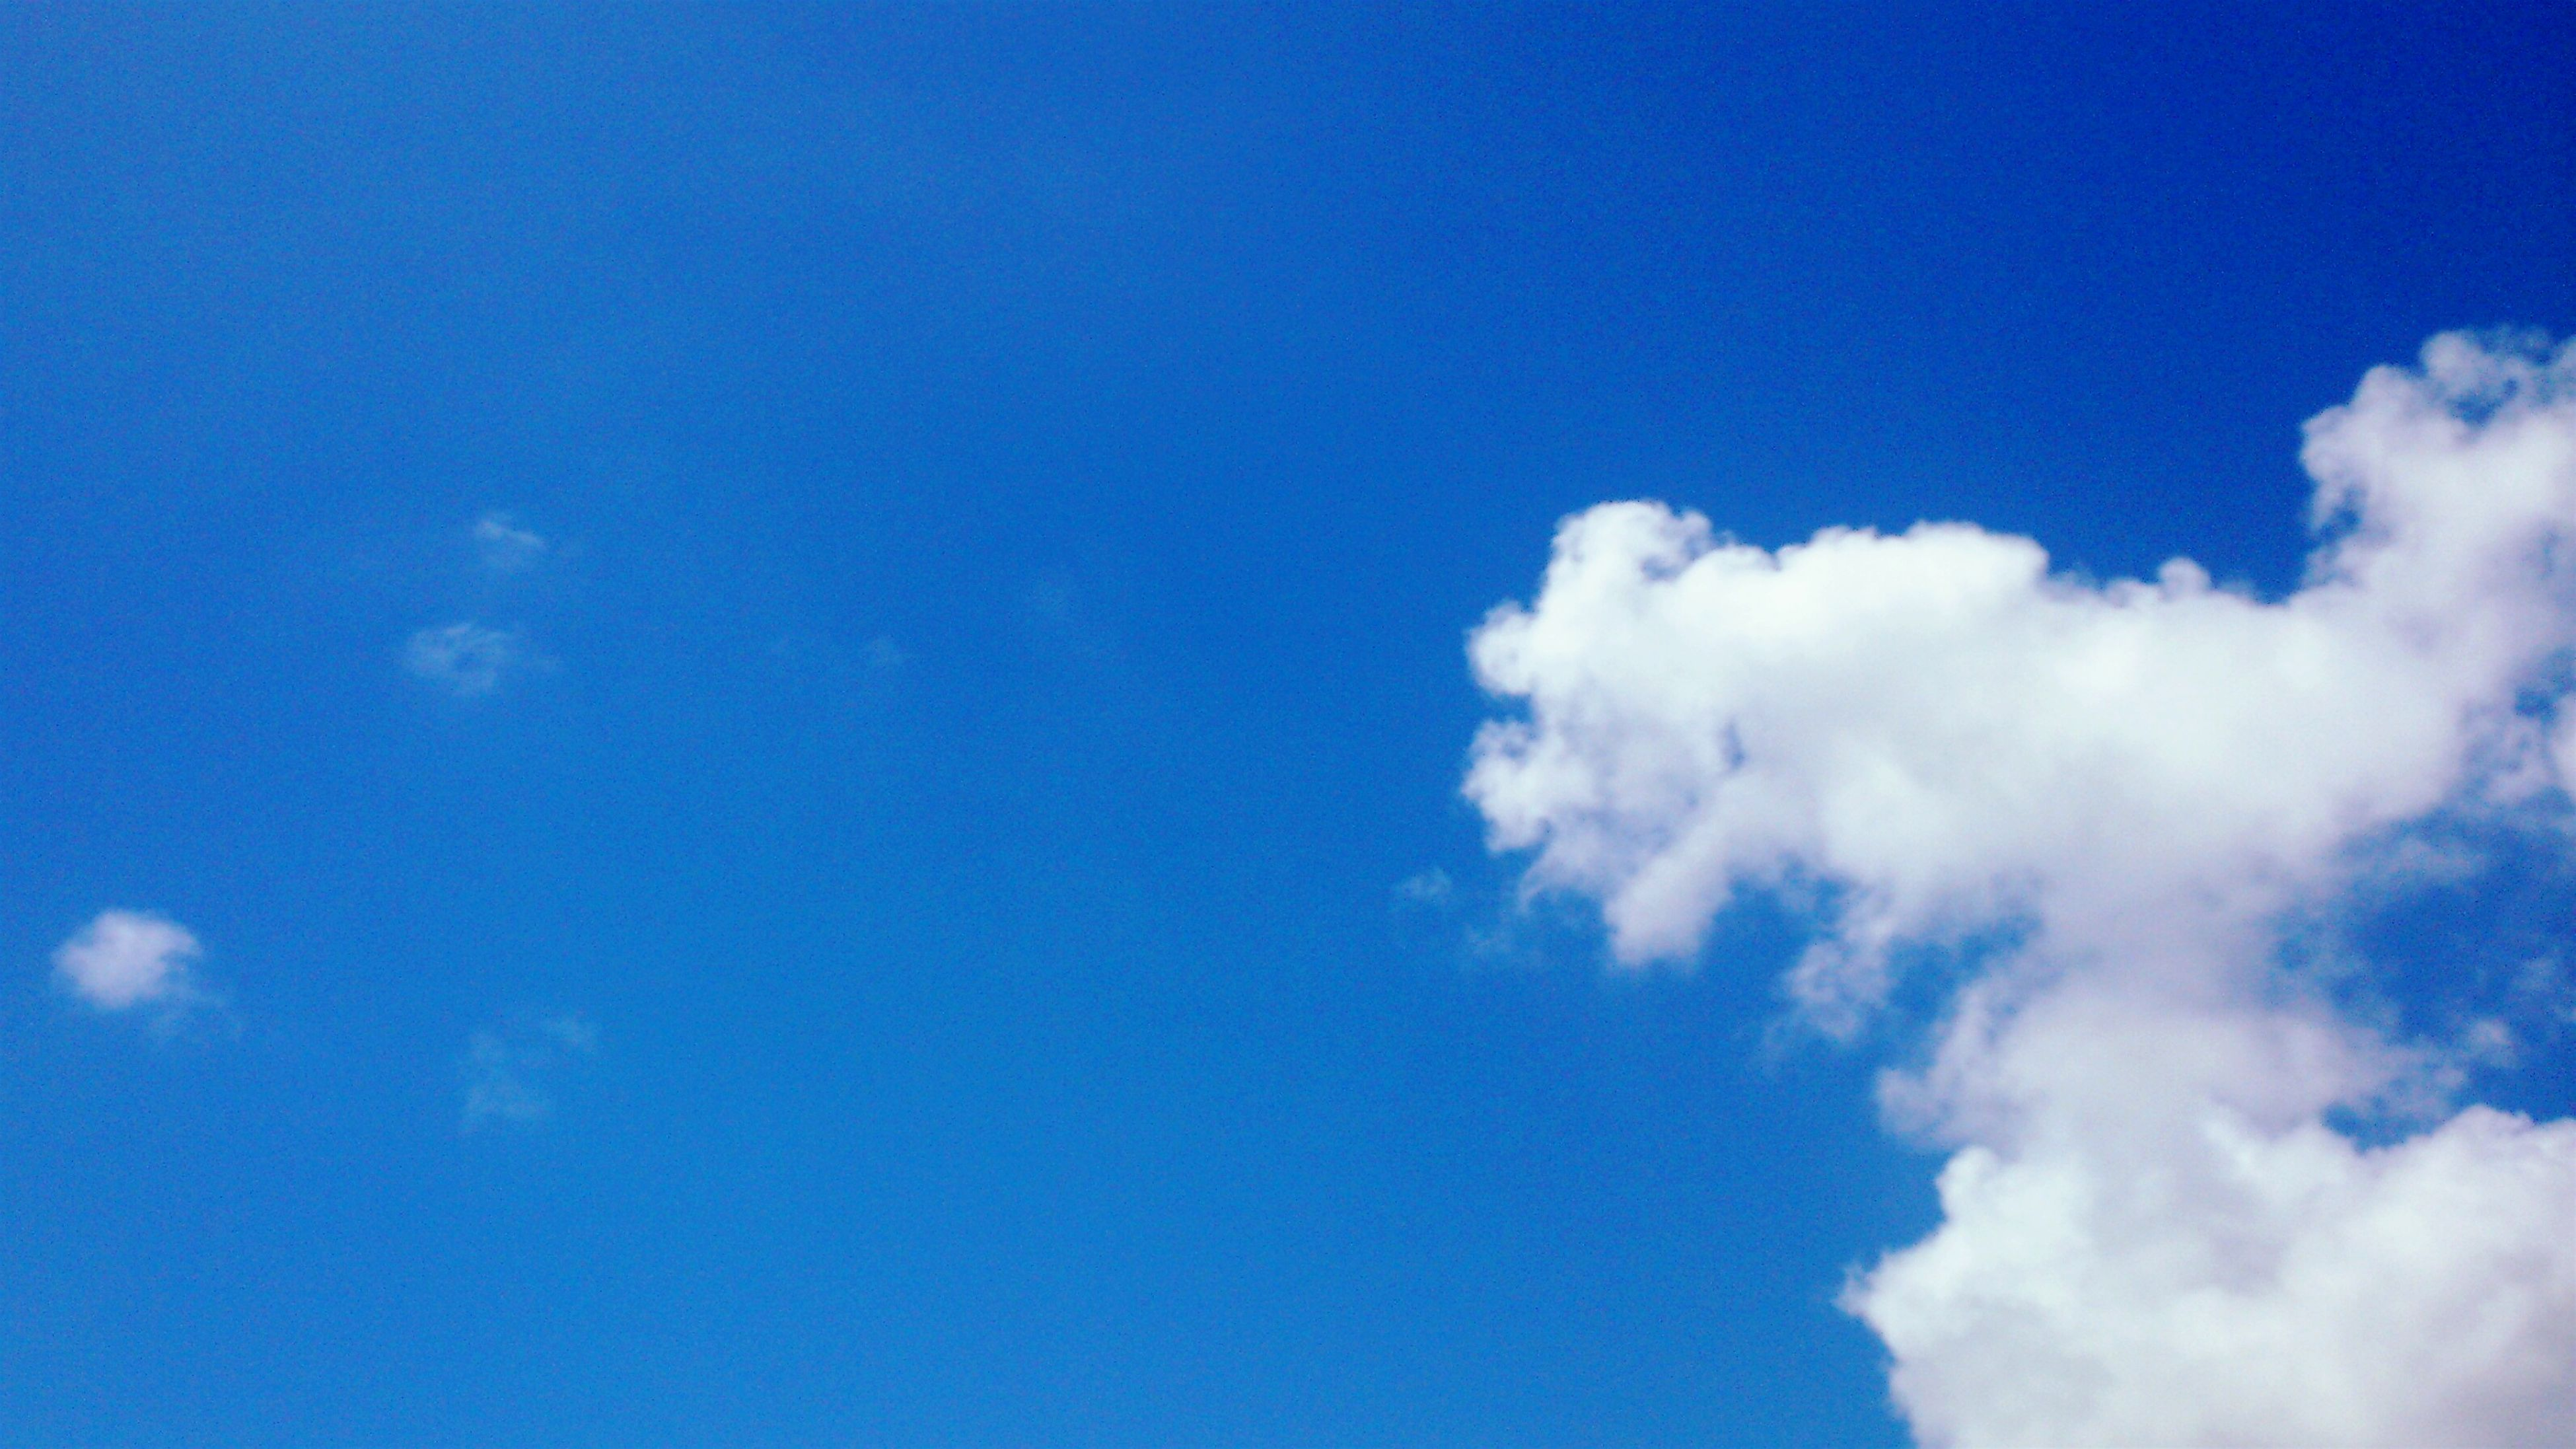 blue, low angle view, sky, beauty in nature, sky only, tranquility, scenics, nature, cloud - sky, copy space, tranquil scene, cloud, white color, day, idyllic, outdoors, backgrounds, cloudscape, no people, majestic